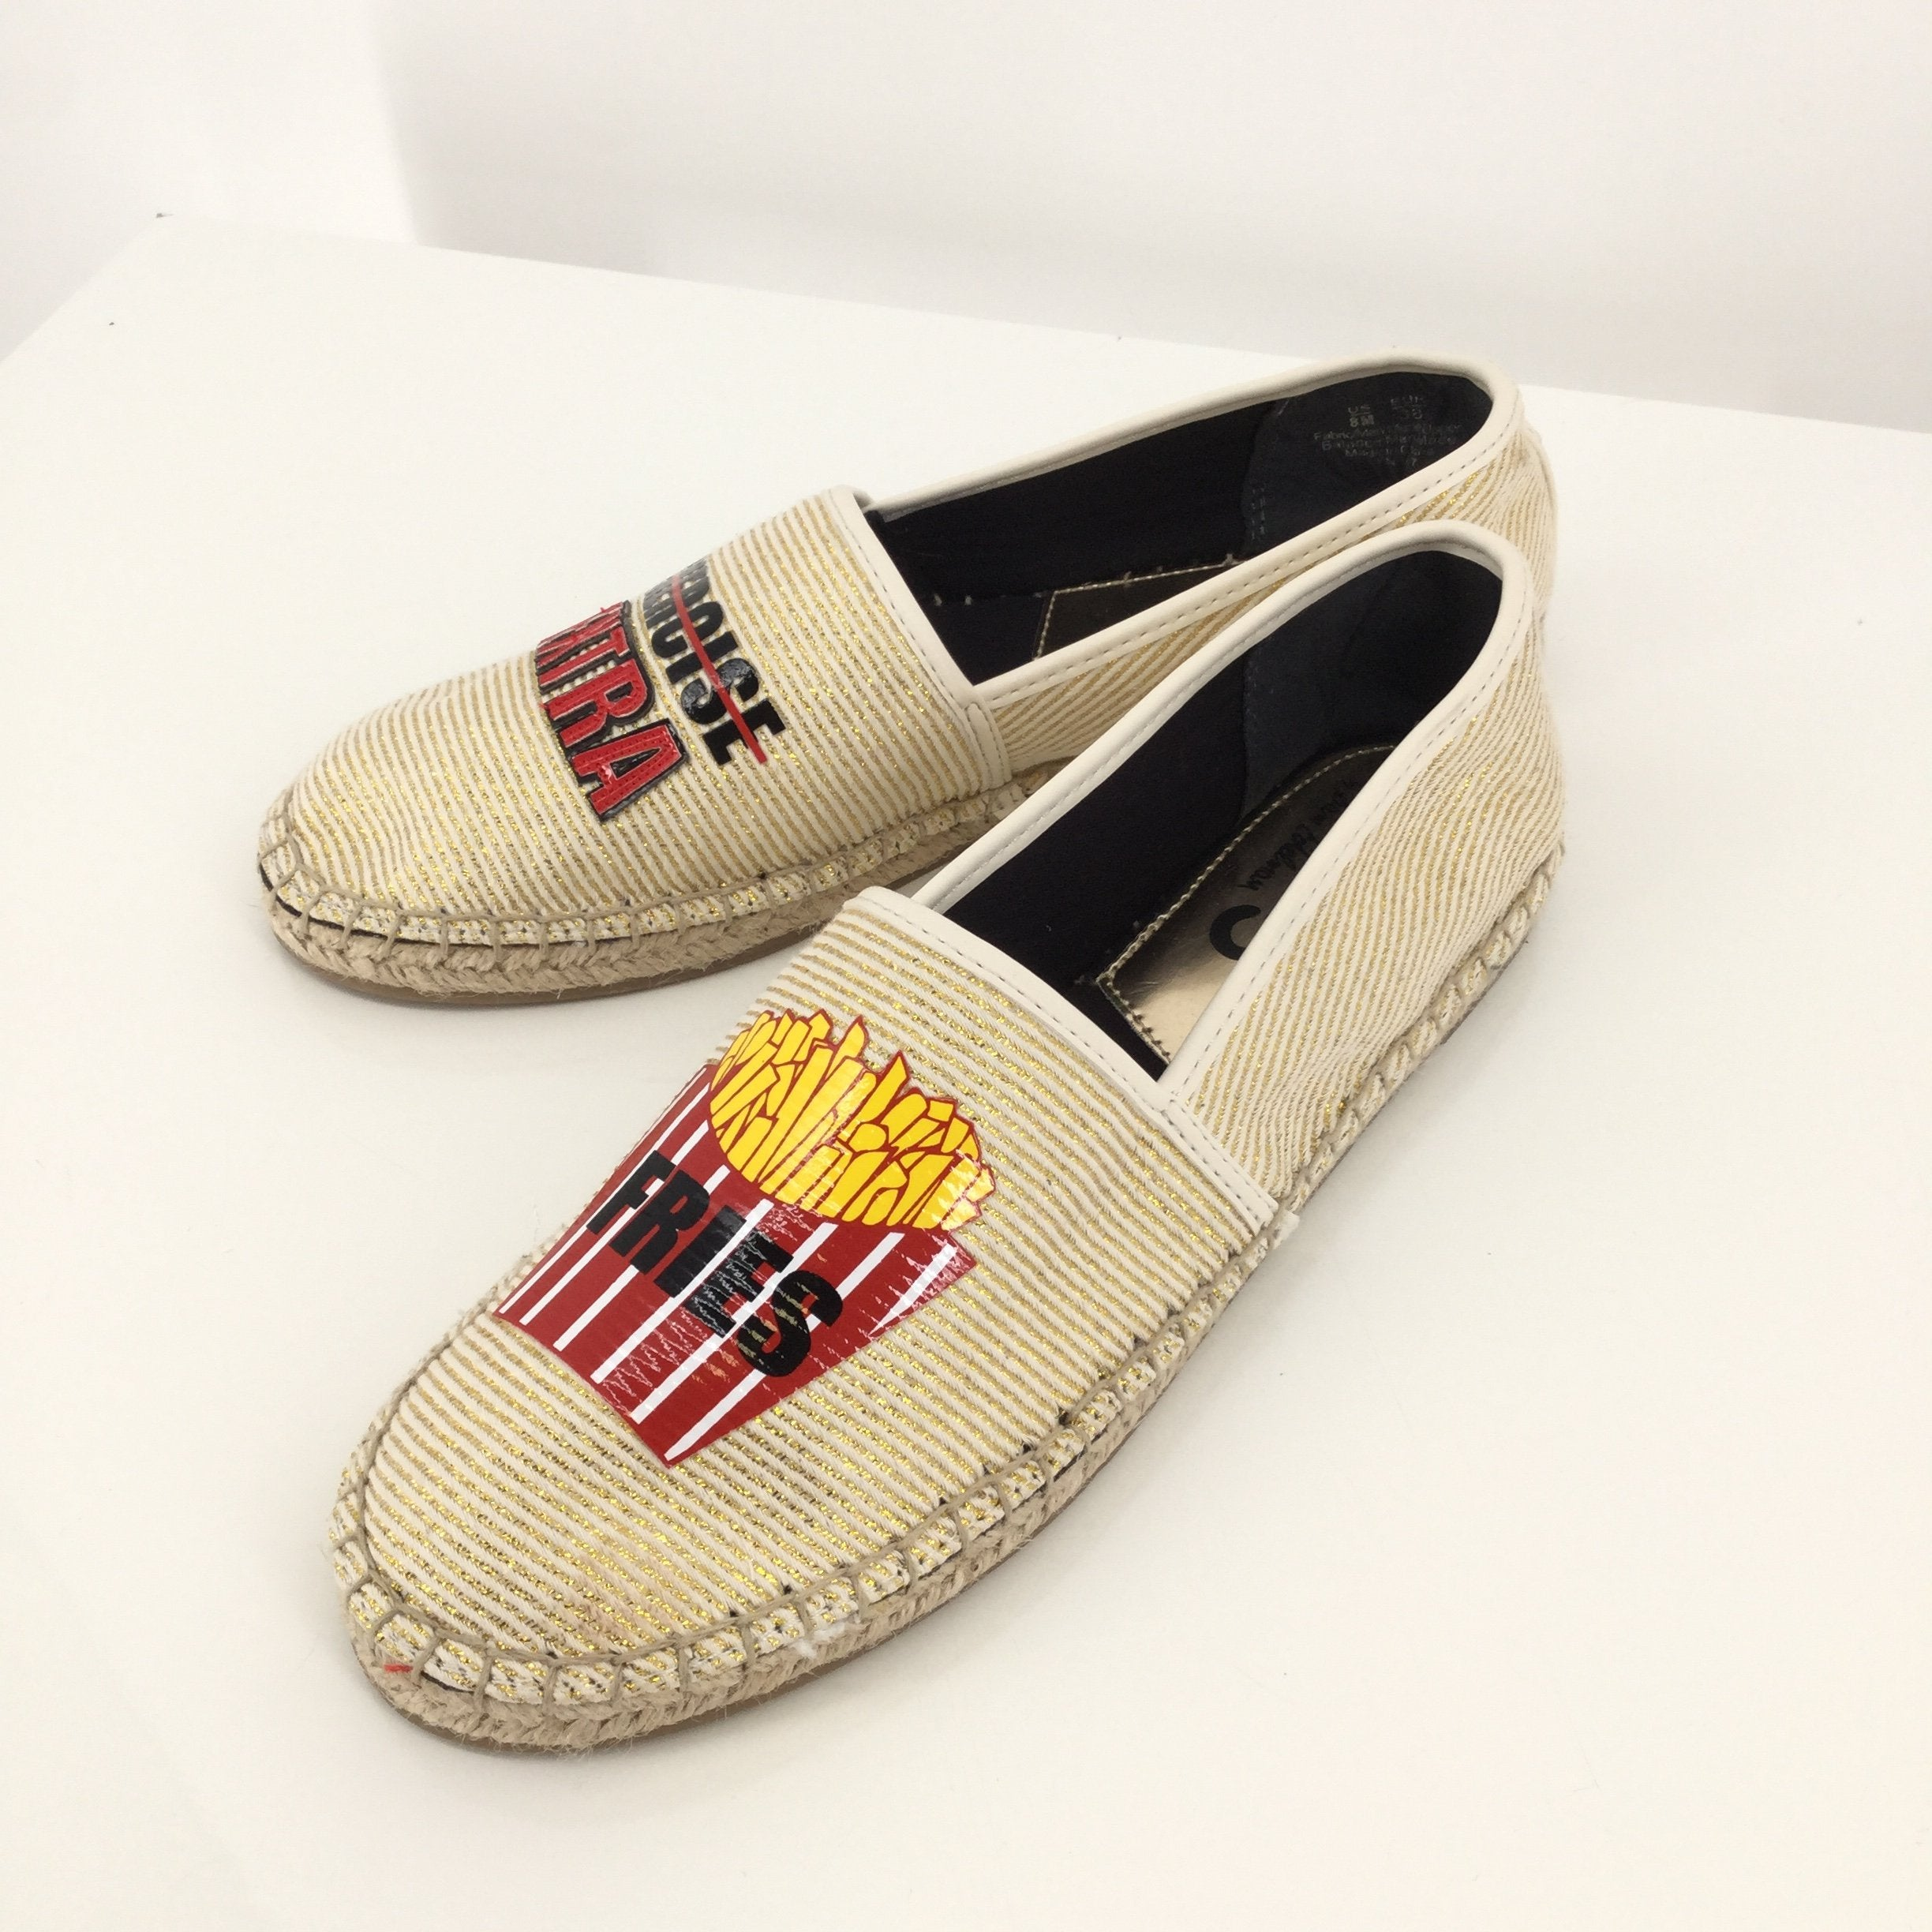 Gold French Fry Sam Edelman Espadrilles Size: 8  - <P>GOLD AND TAN ESPADRILLES WITH RED AND BLACK FRENCH FRY DETAIL. SUPER CUTE AND A SIZE 8 IN EXCELLENT CONDITION.</P>